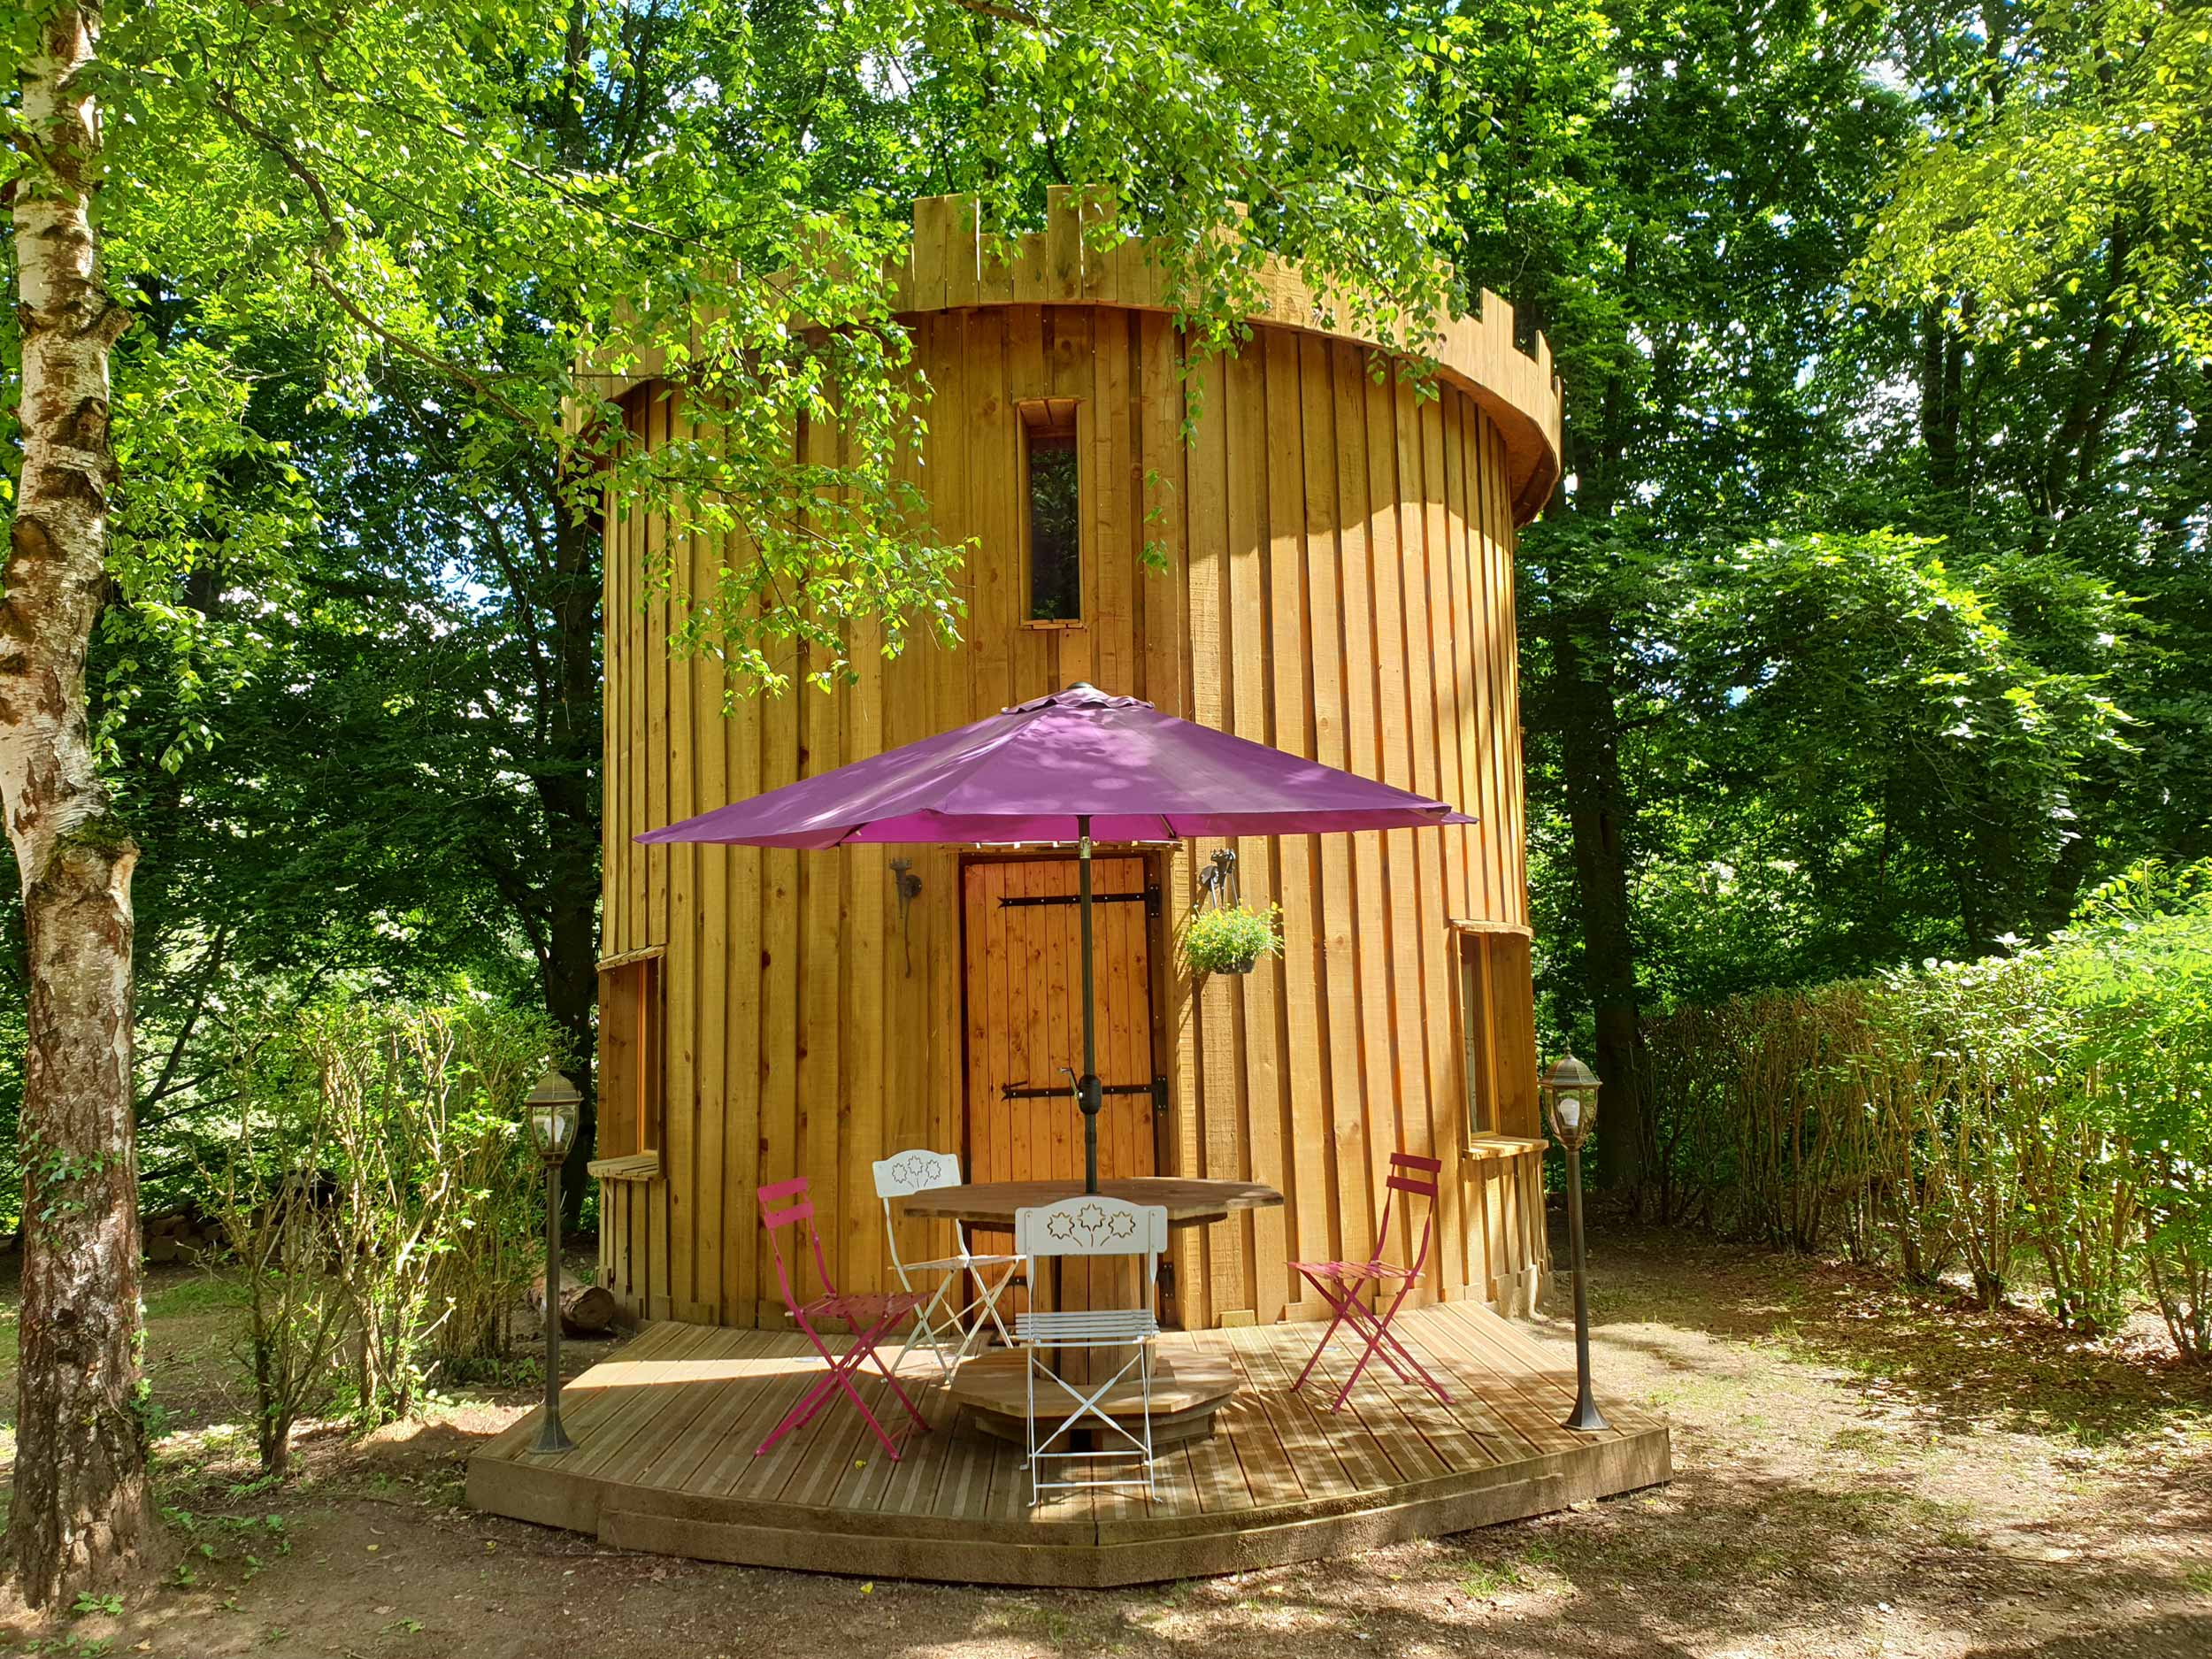 La Tour au camping de Pierrefonds